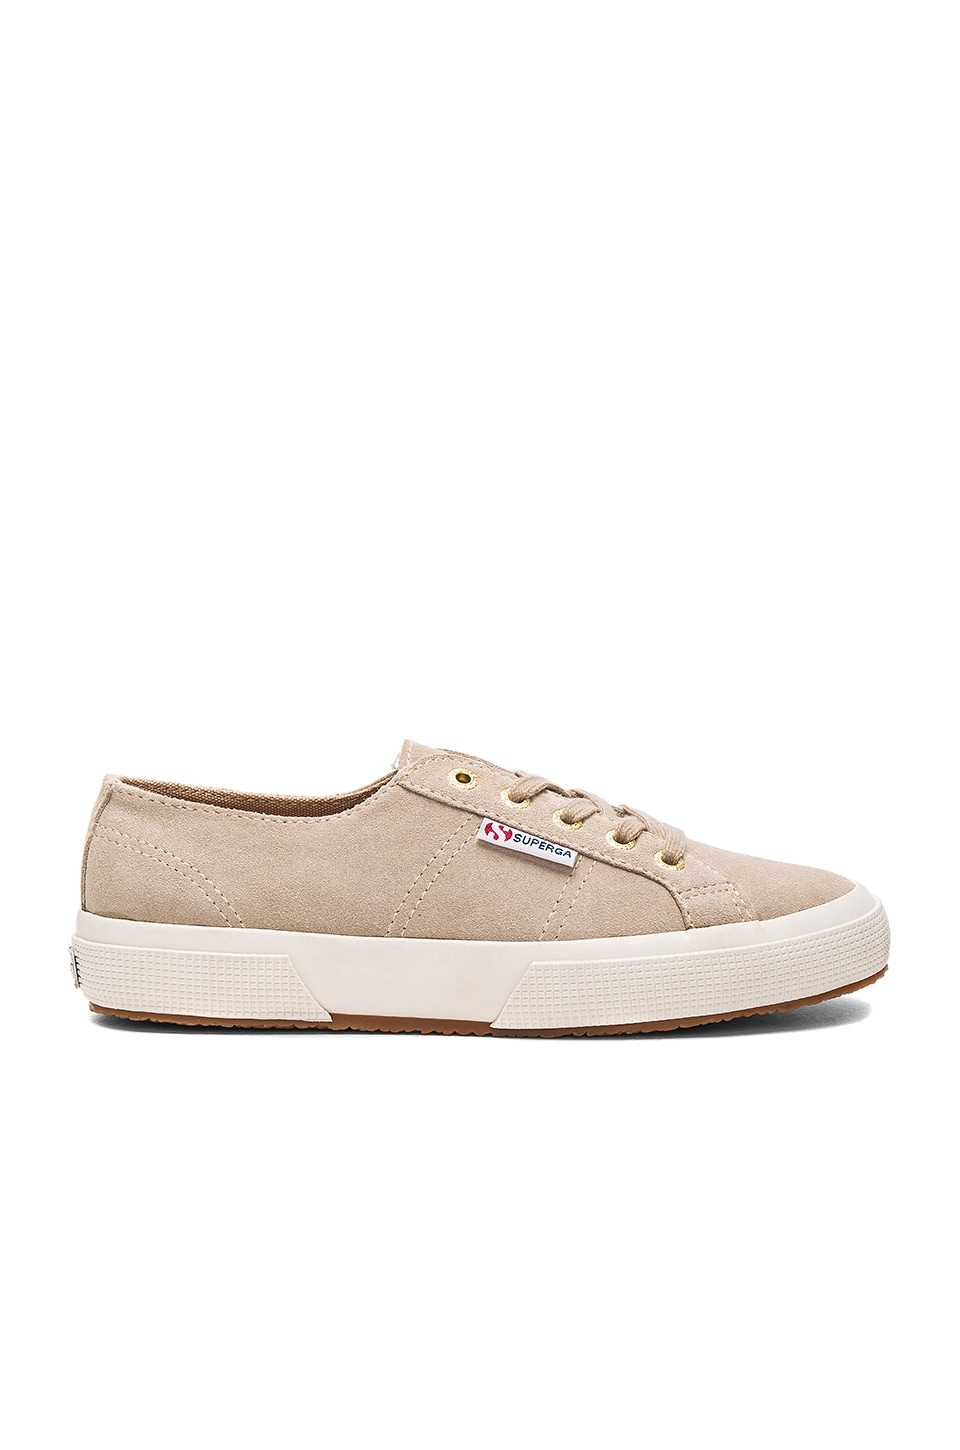 Superga 2750 Sueu Sneaker in Sand With Gold Eyelets